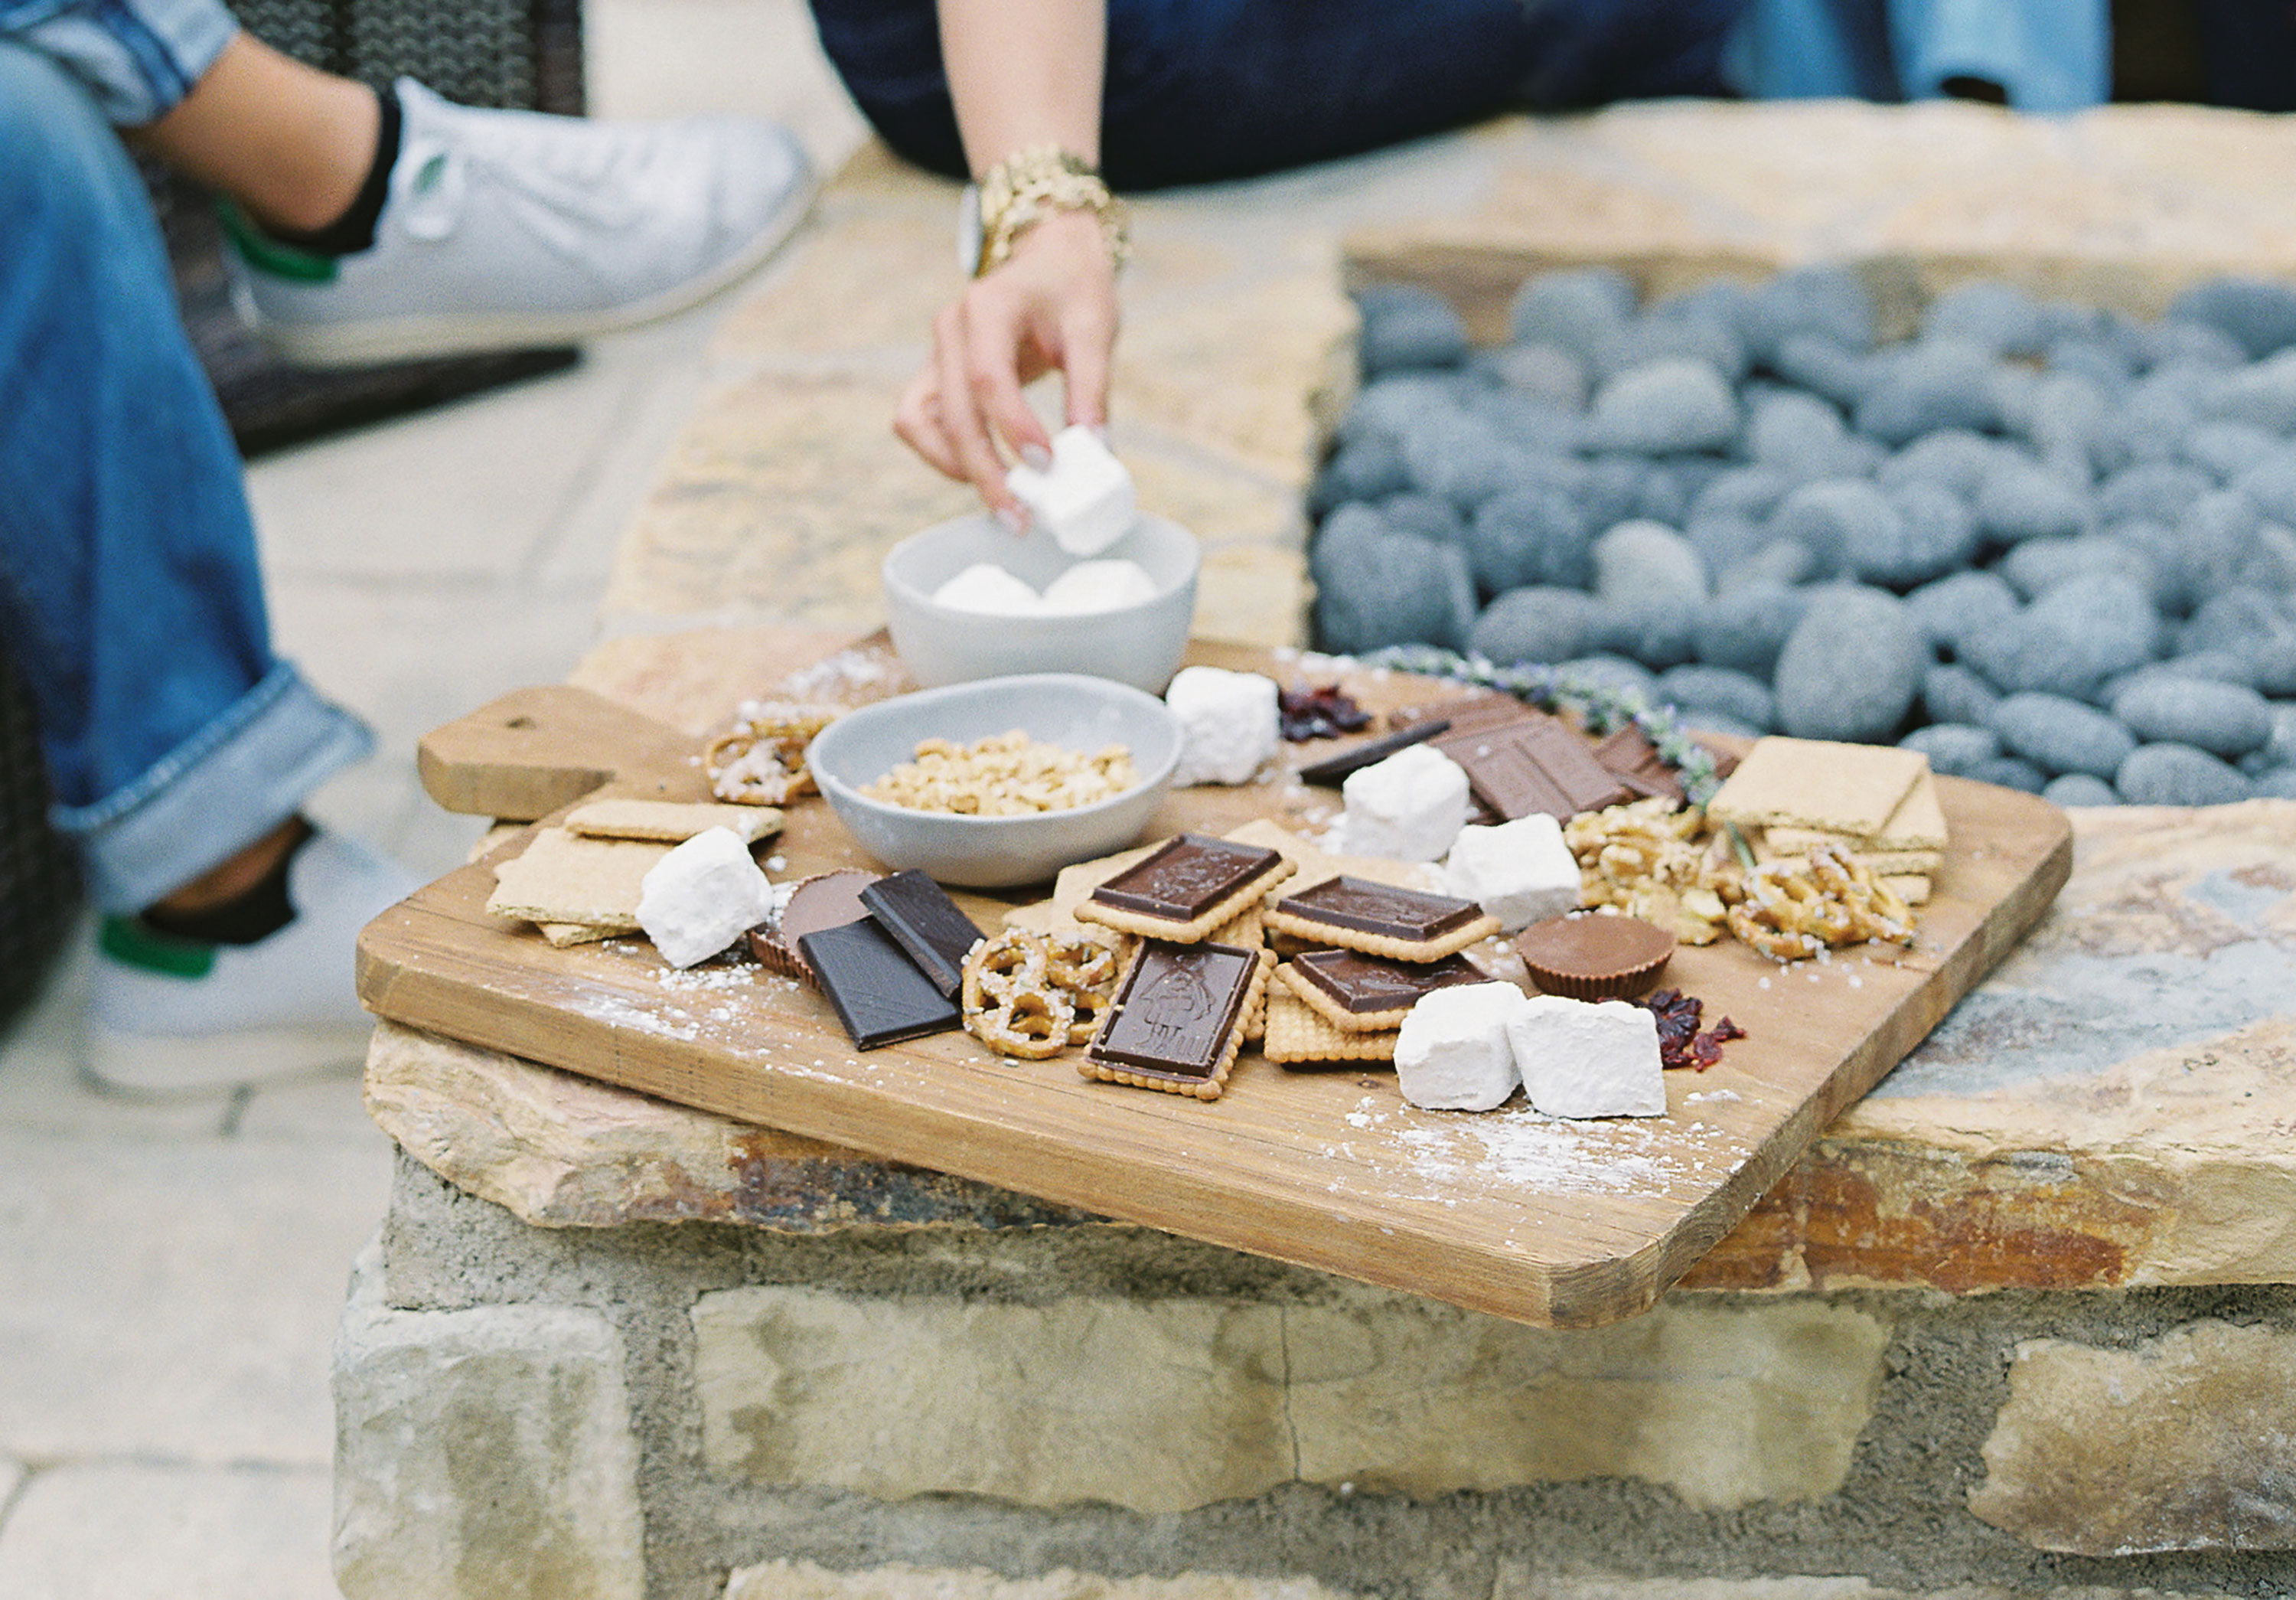 homemade marshmallow recipe smores bar s'mores board